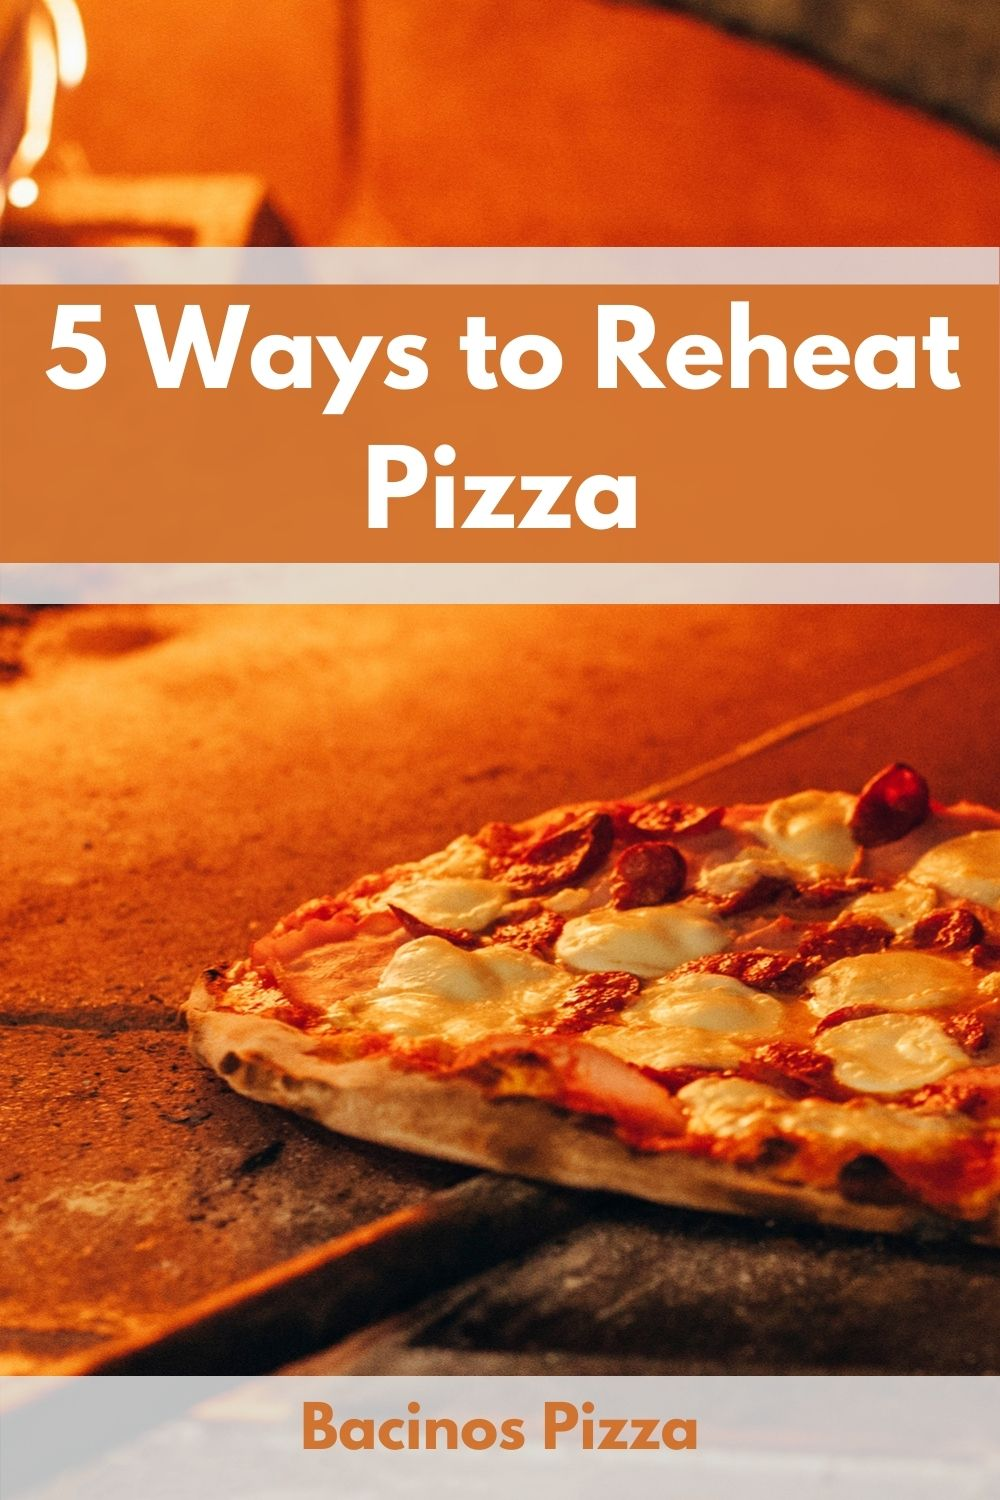 5 Ways to Reheat Pizza Which is Best pin 2